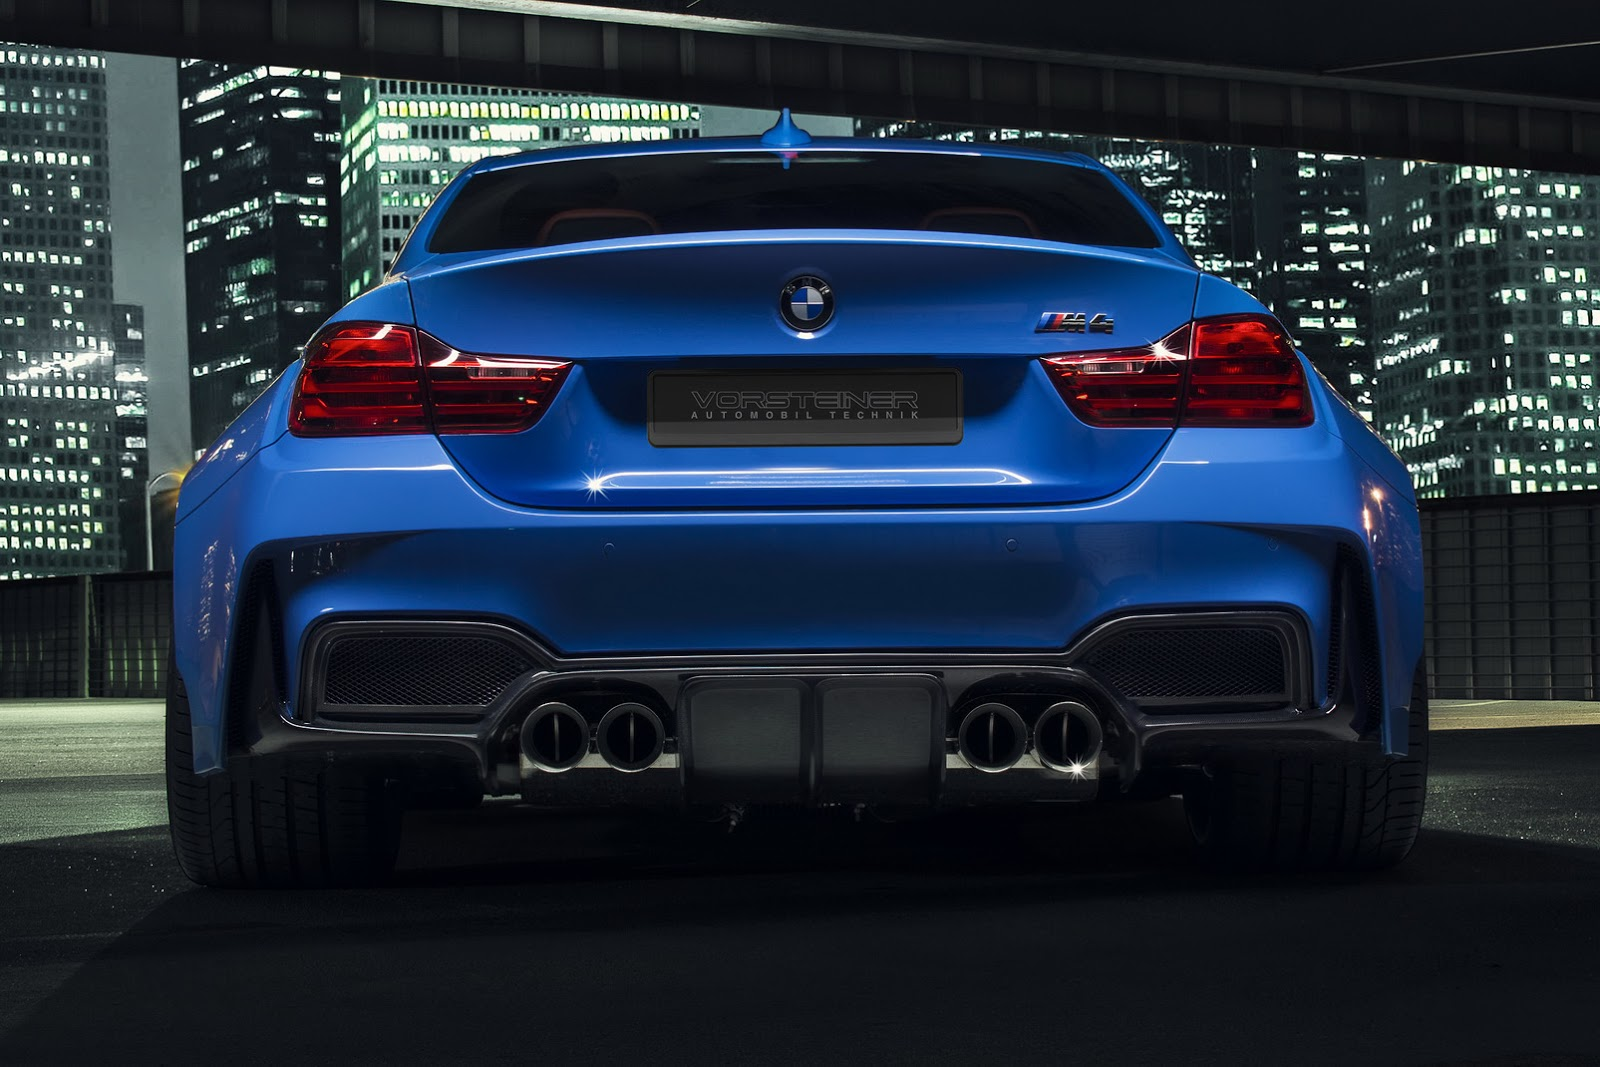 Bmw M5 2016 Bmw Automotive Journal – Tomorroworld Co - 2017 bmw m5 by vorsteiner wallpapers